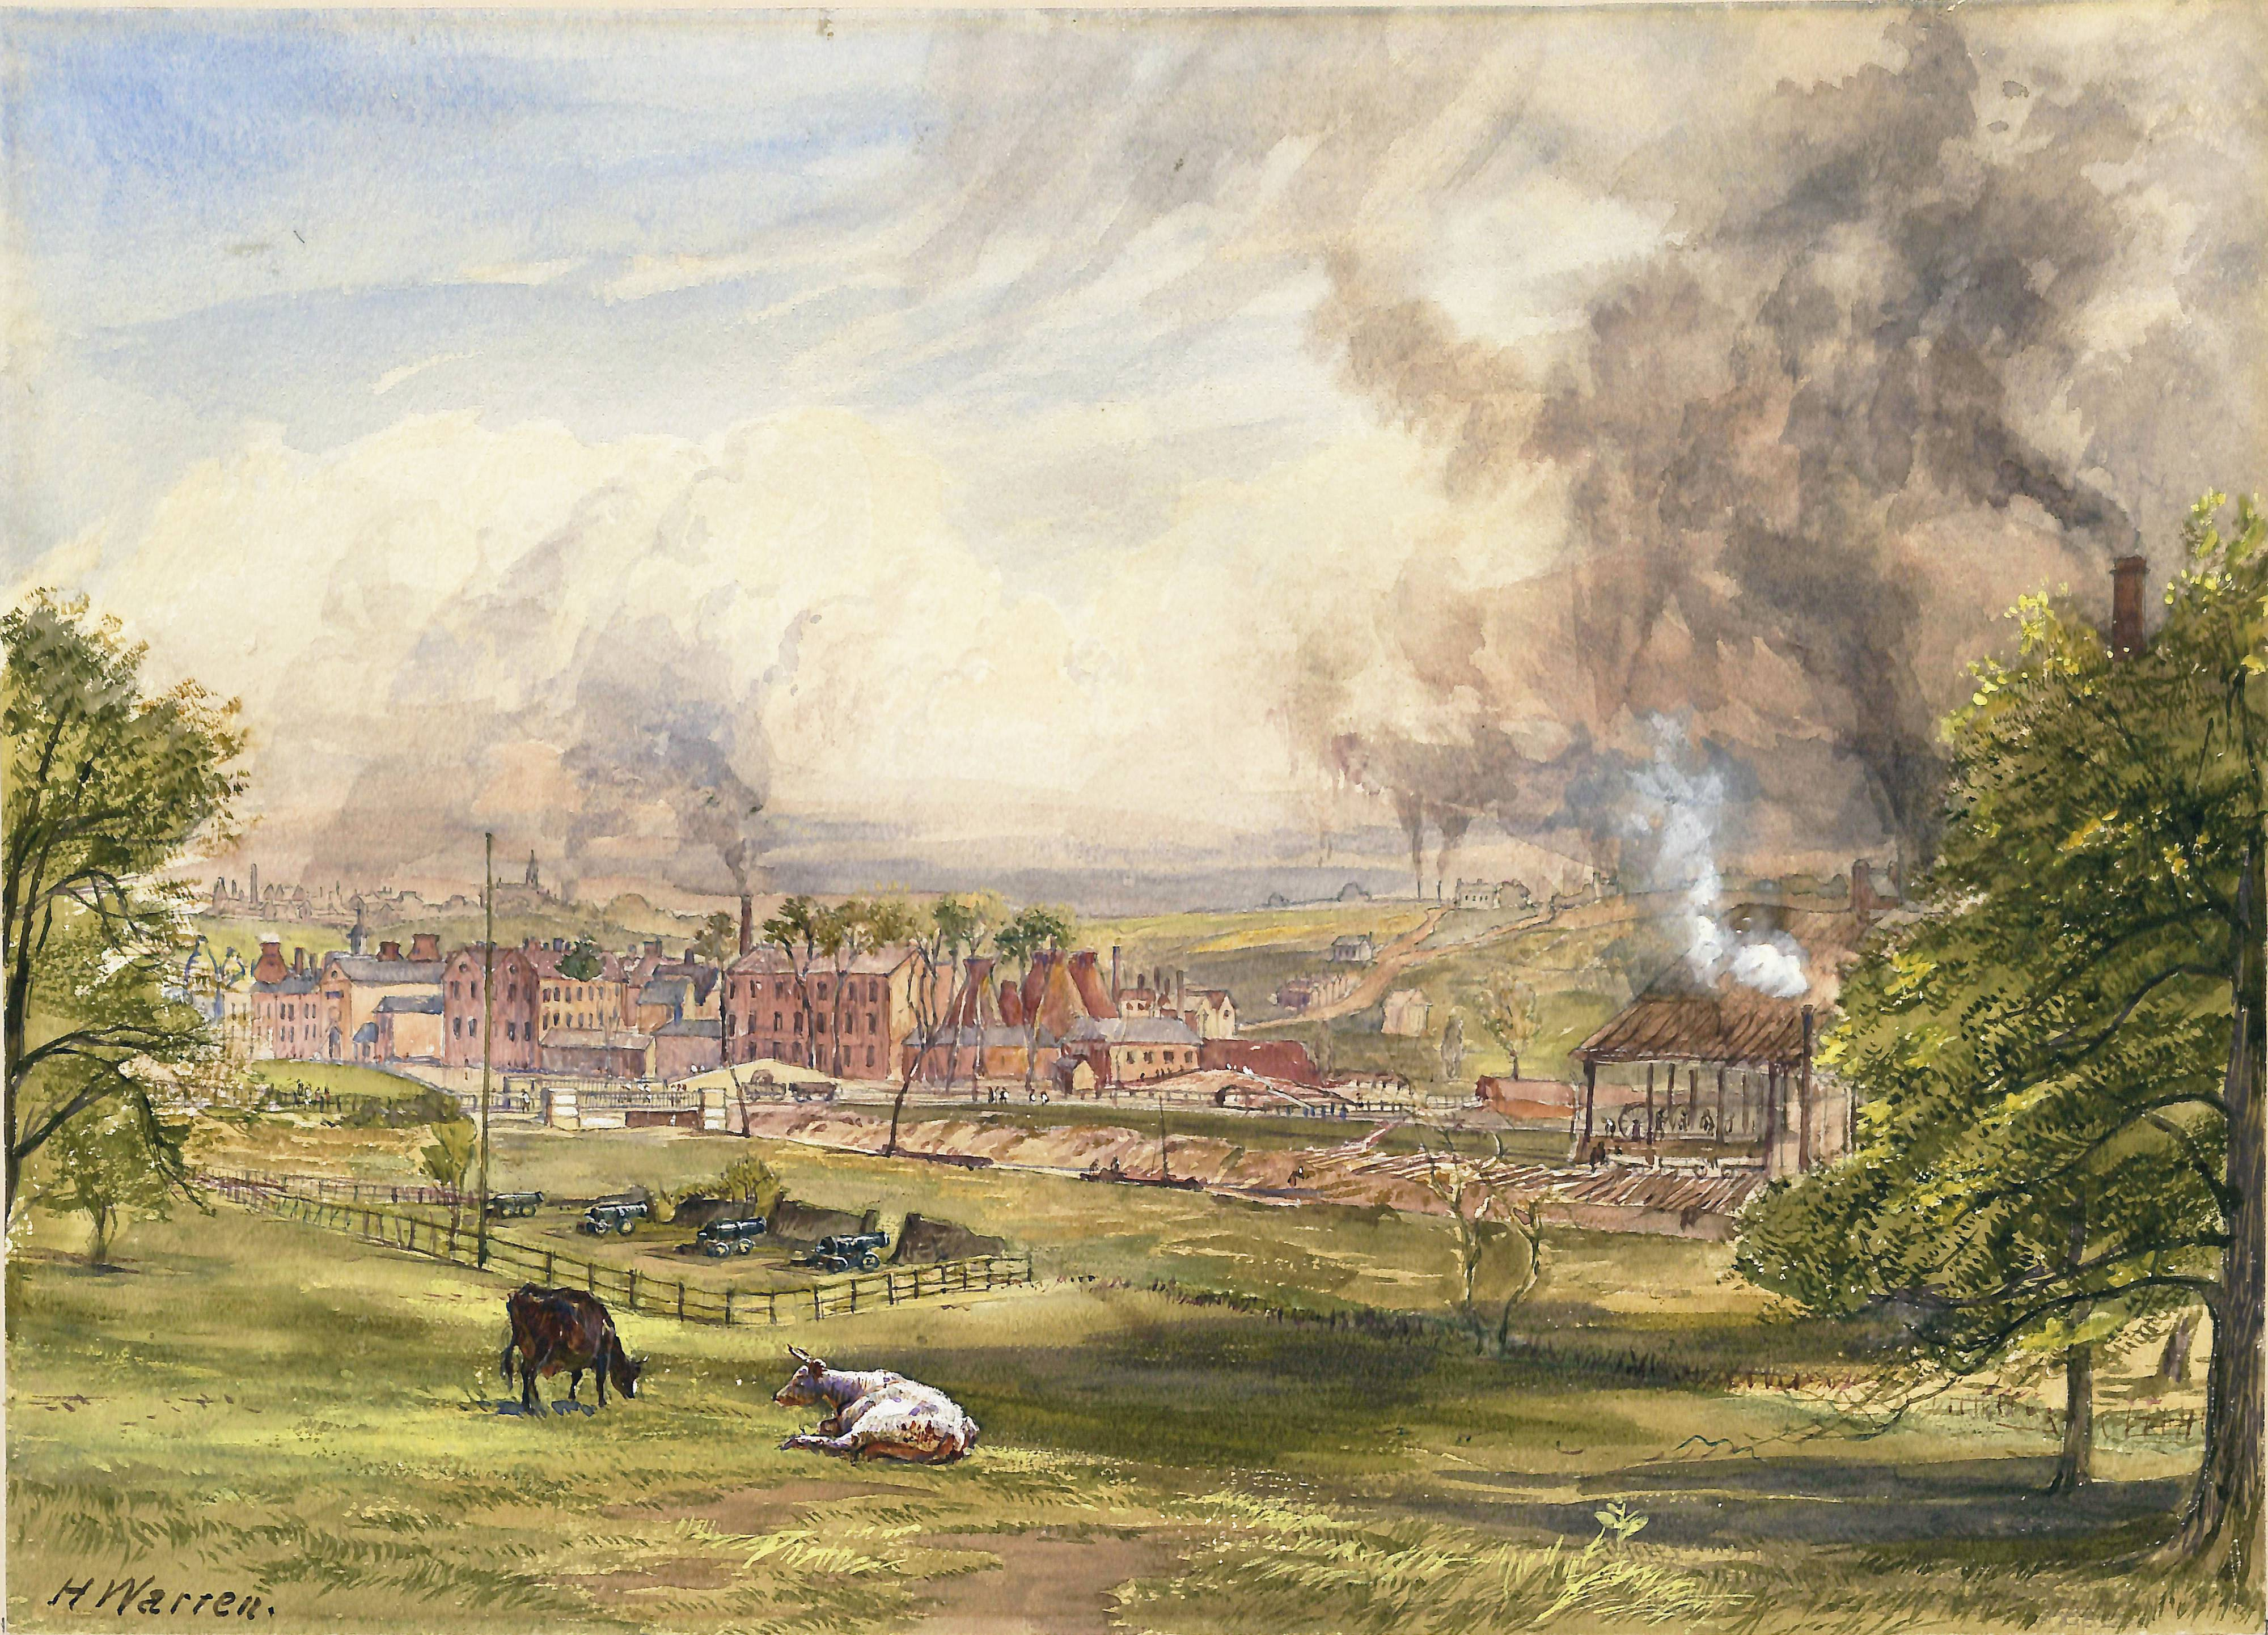 Watercolour painting. A field with two cows in the foreground and a small enclosure with cannon. In the distance, brick buildings with smoking industrial chimneys.